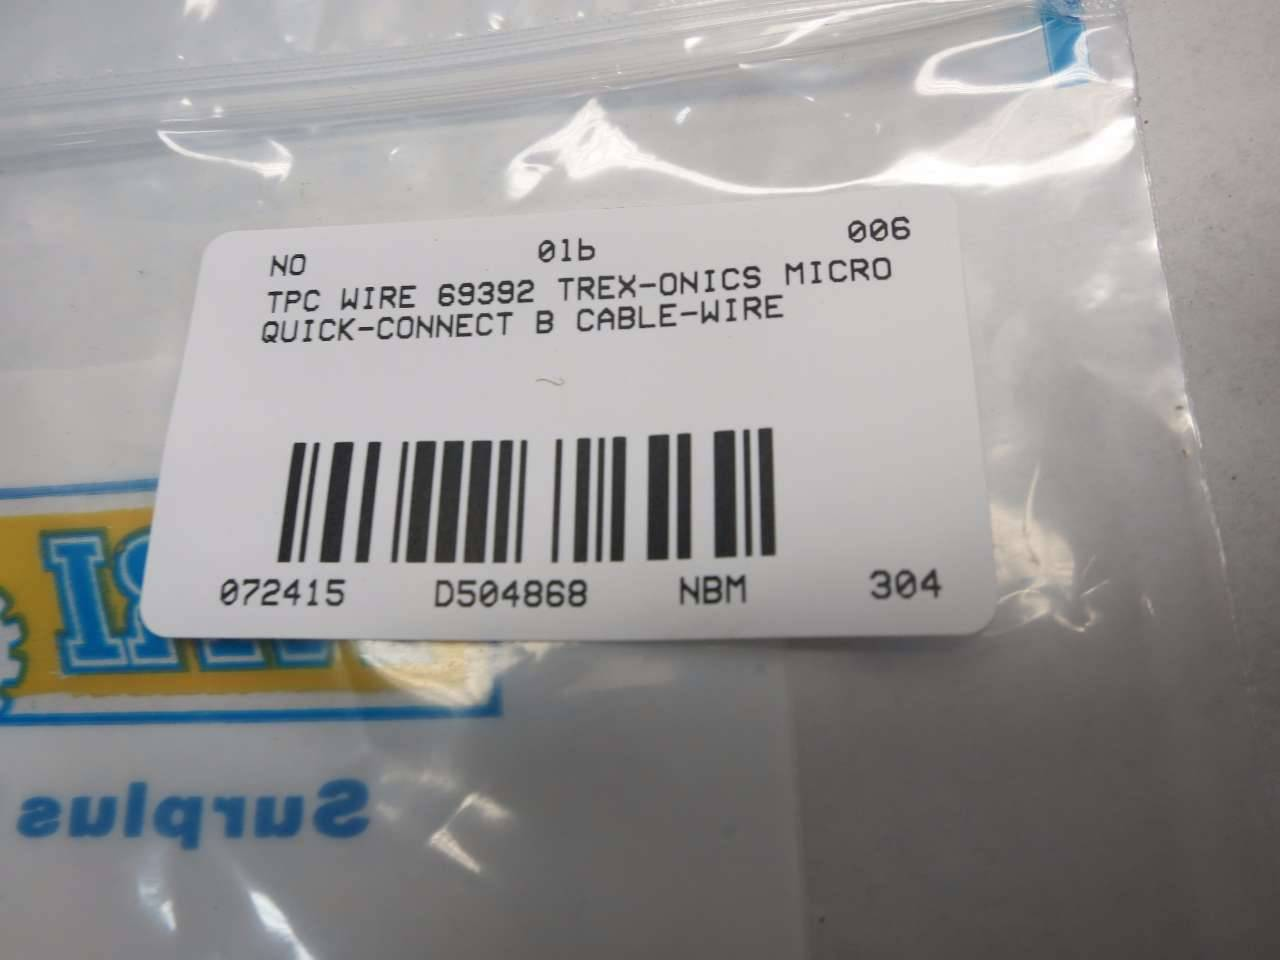 NEW IN BOX TPC WIRE /& CABLE 69392 69392